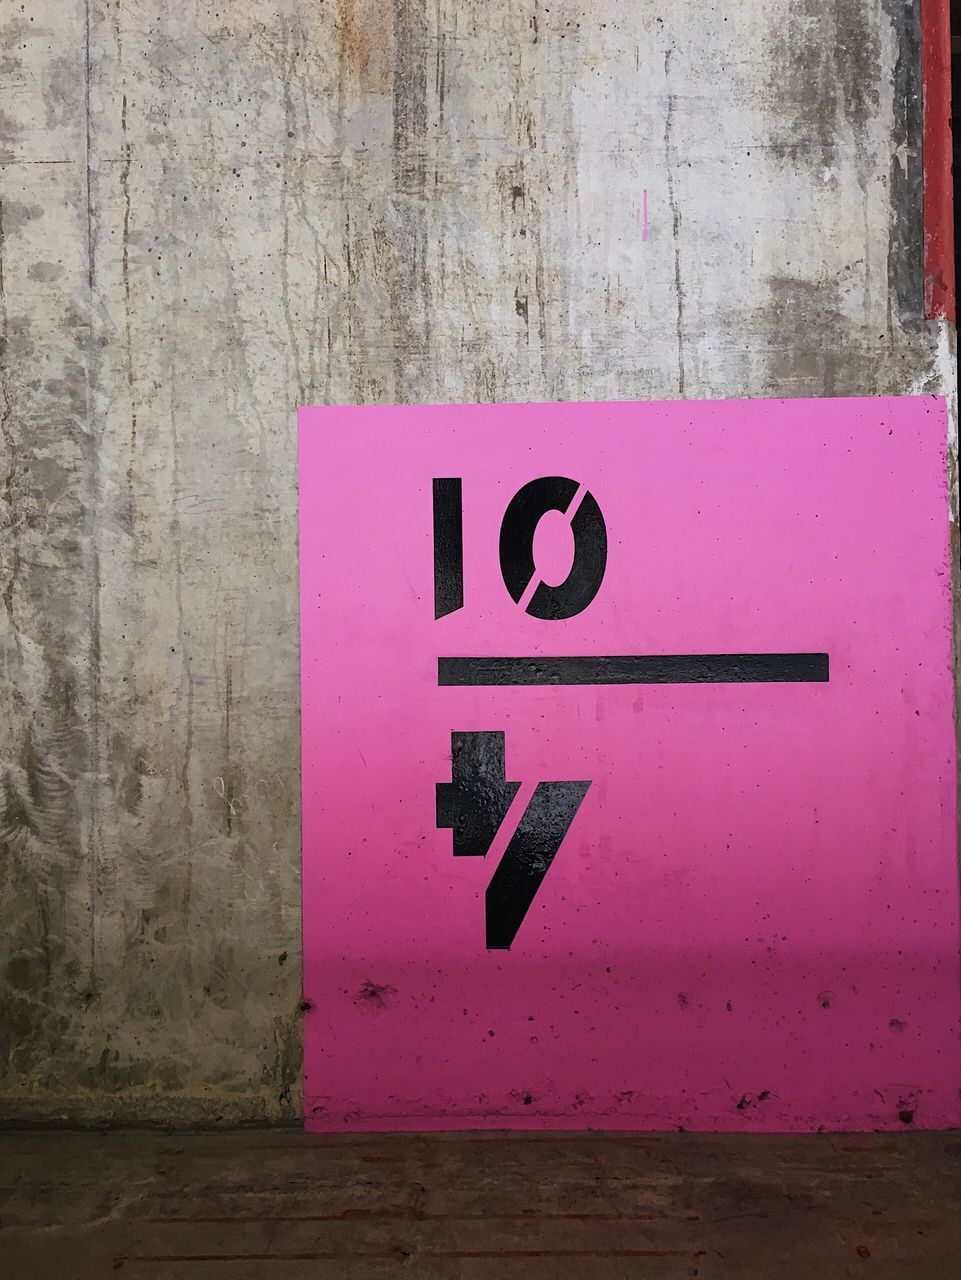 communication, wall - building feature, number, text, pink color, sign, no people, western script, close-up, day, built structure, outdoors, architecture, wall, capital letter, guidance, wood - material, black color, purple